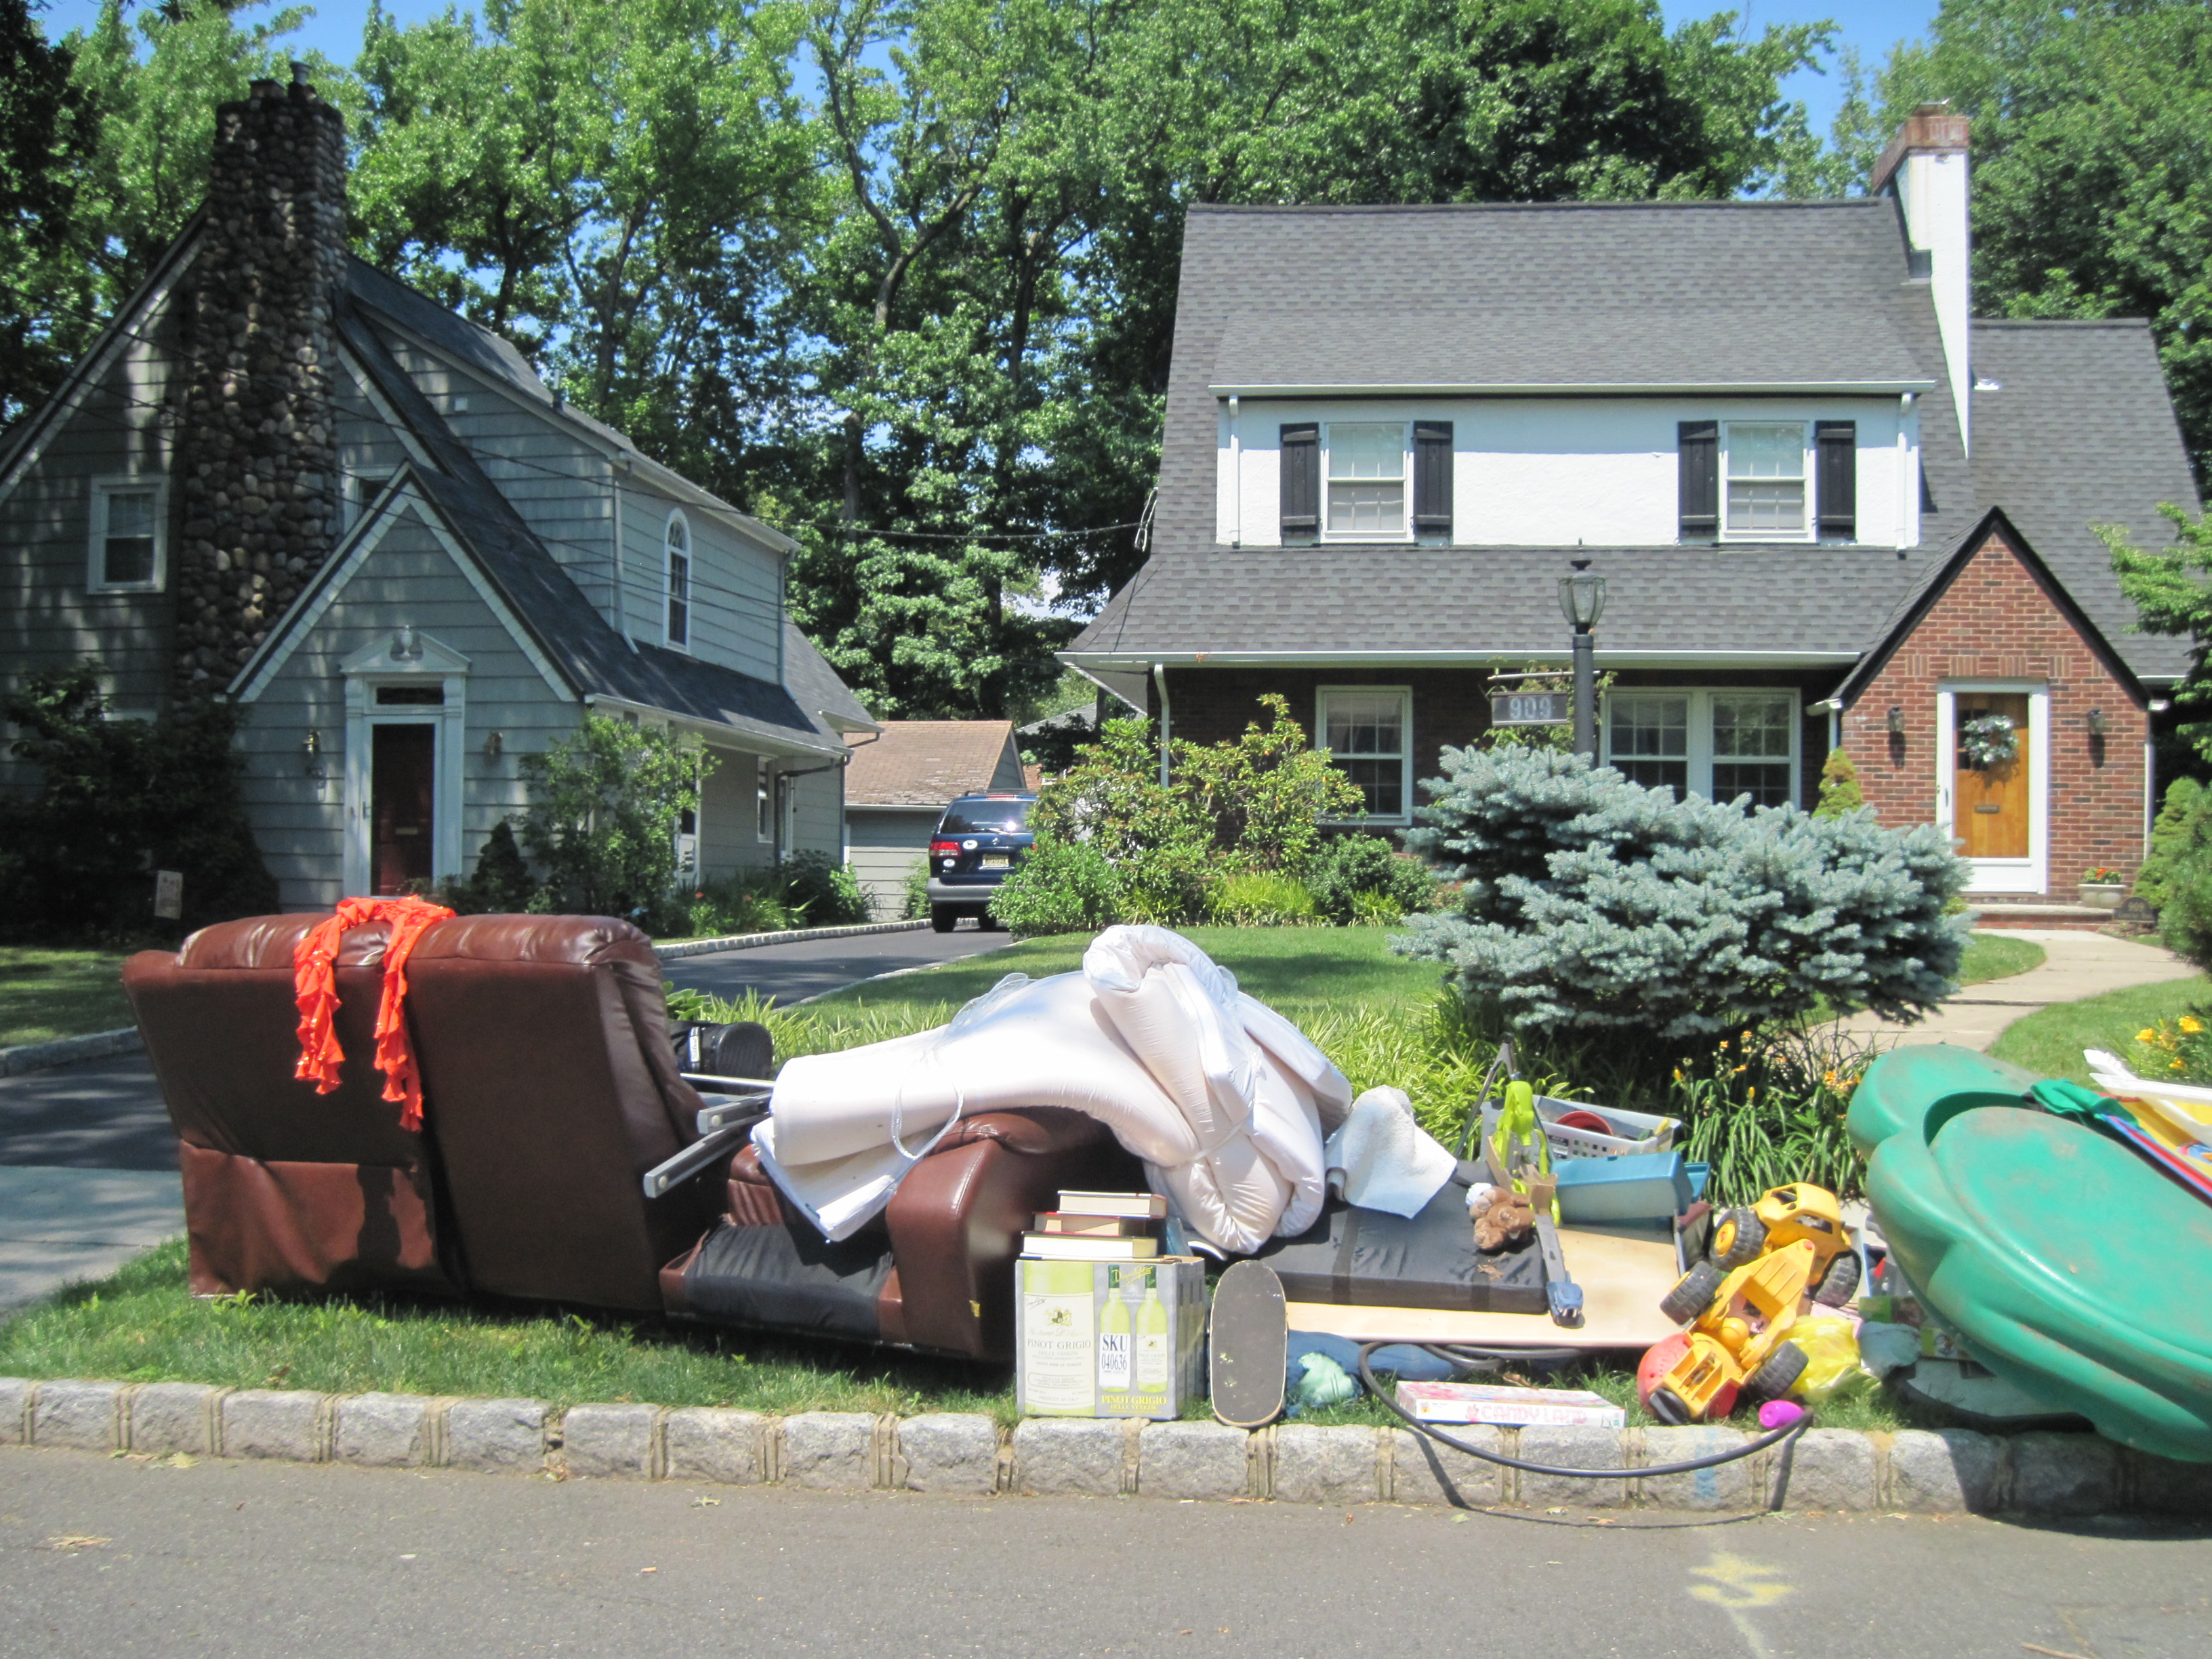 Cleaning Up Your House With Trash Collection Services